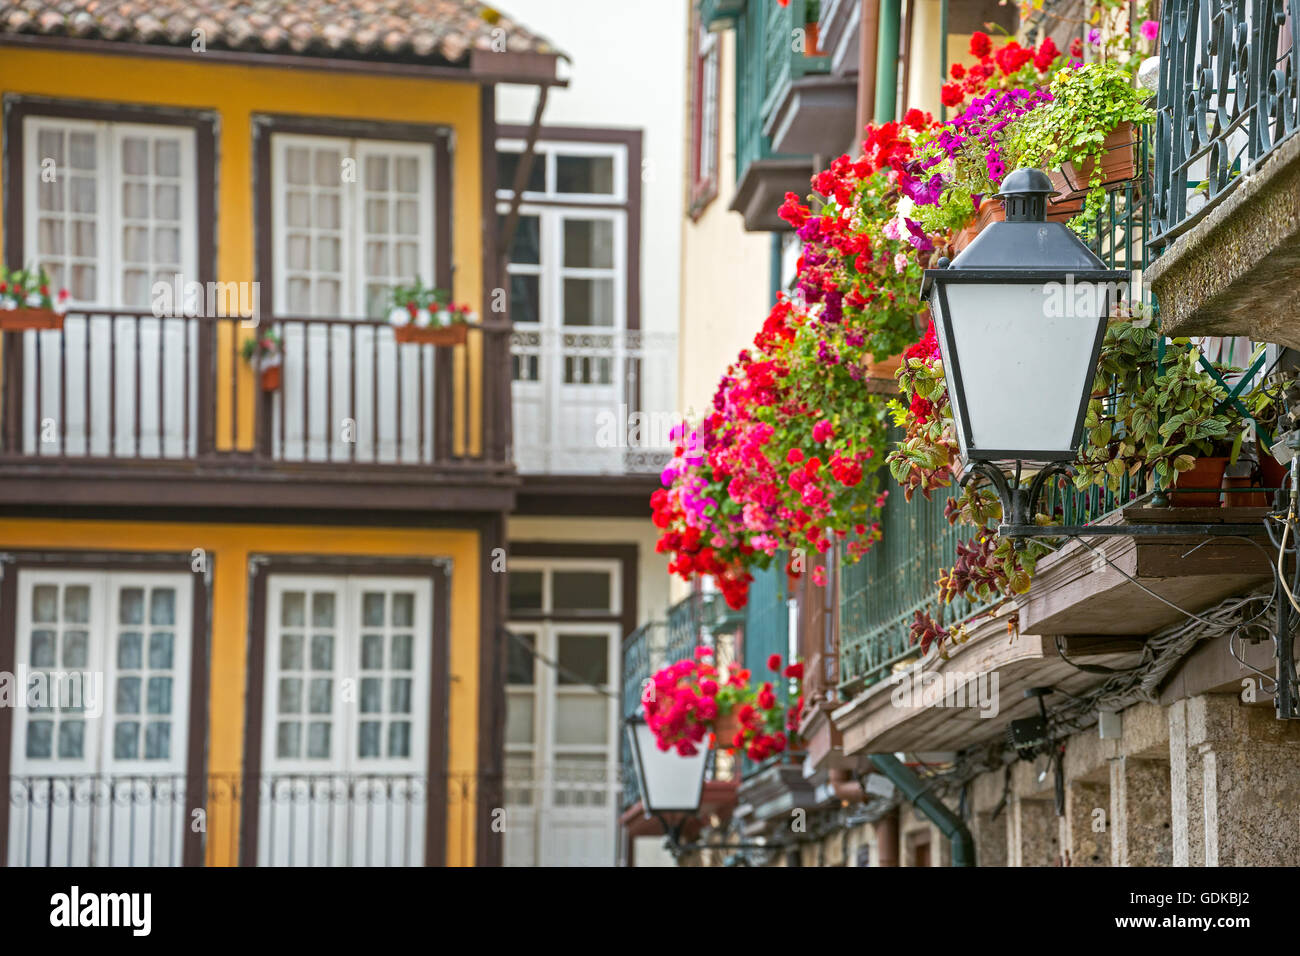 Hanging baskets on the balconies of the old town in Guimaraes, Guimaraes, Braga District, Portugal, Europe, Travel, - Stock Image